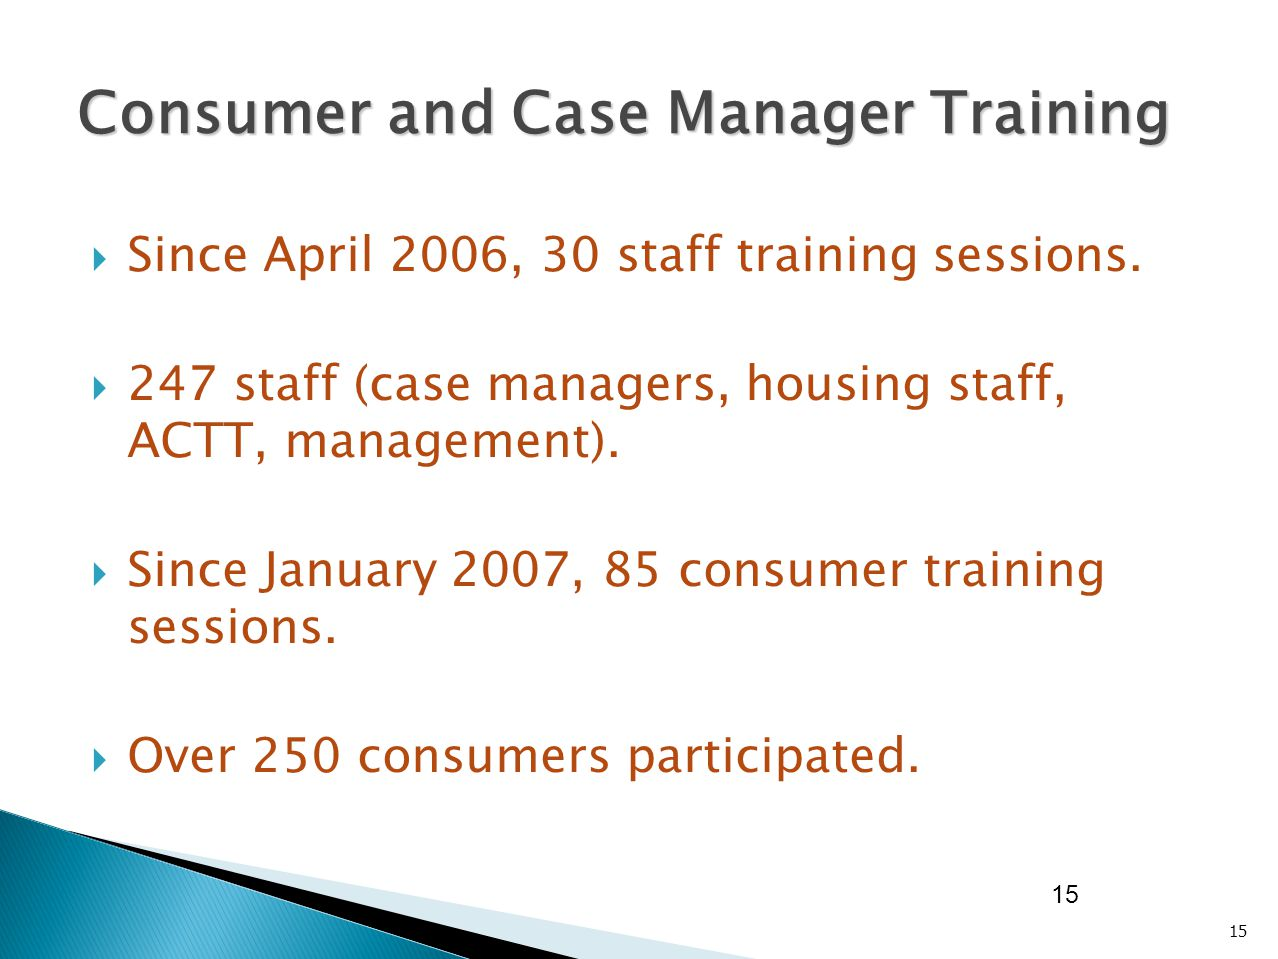  Since April 2006, 30 staff training sessions.